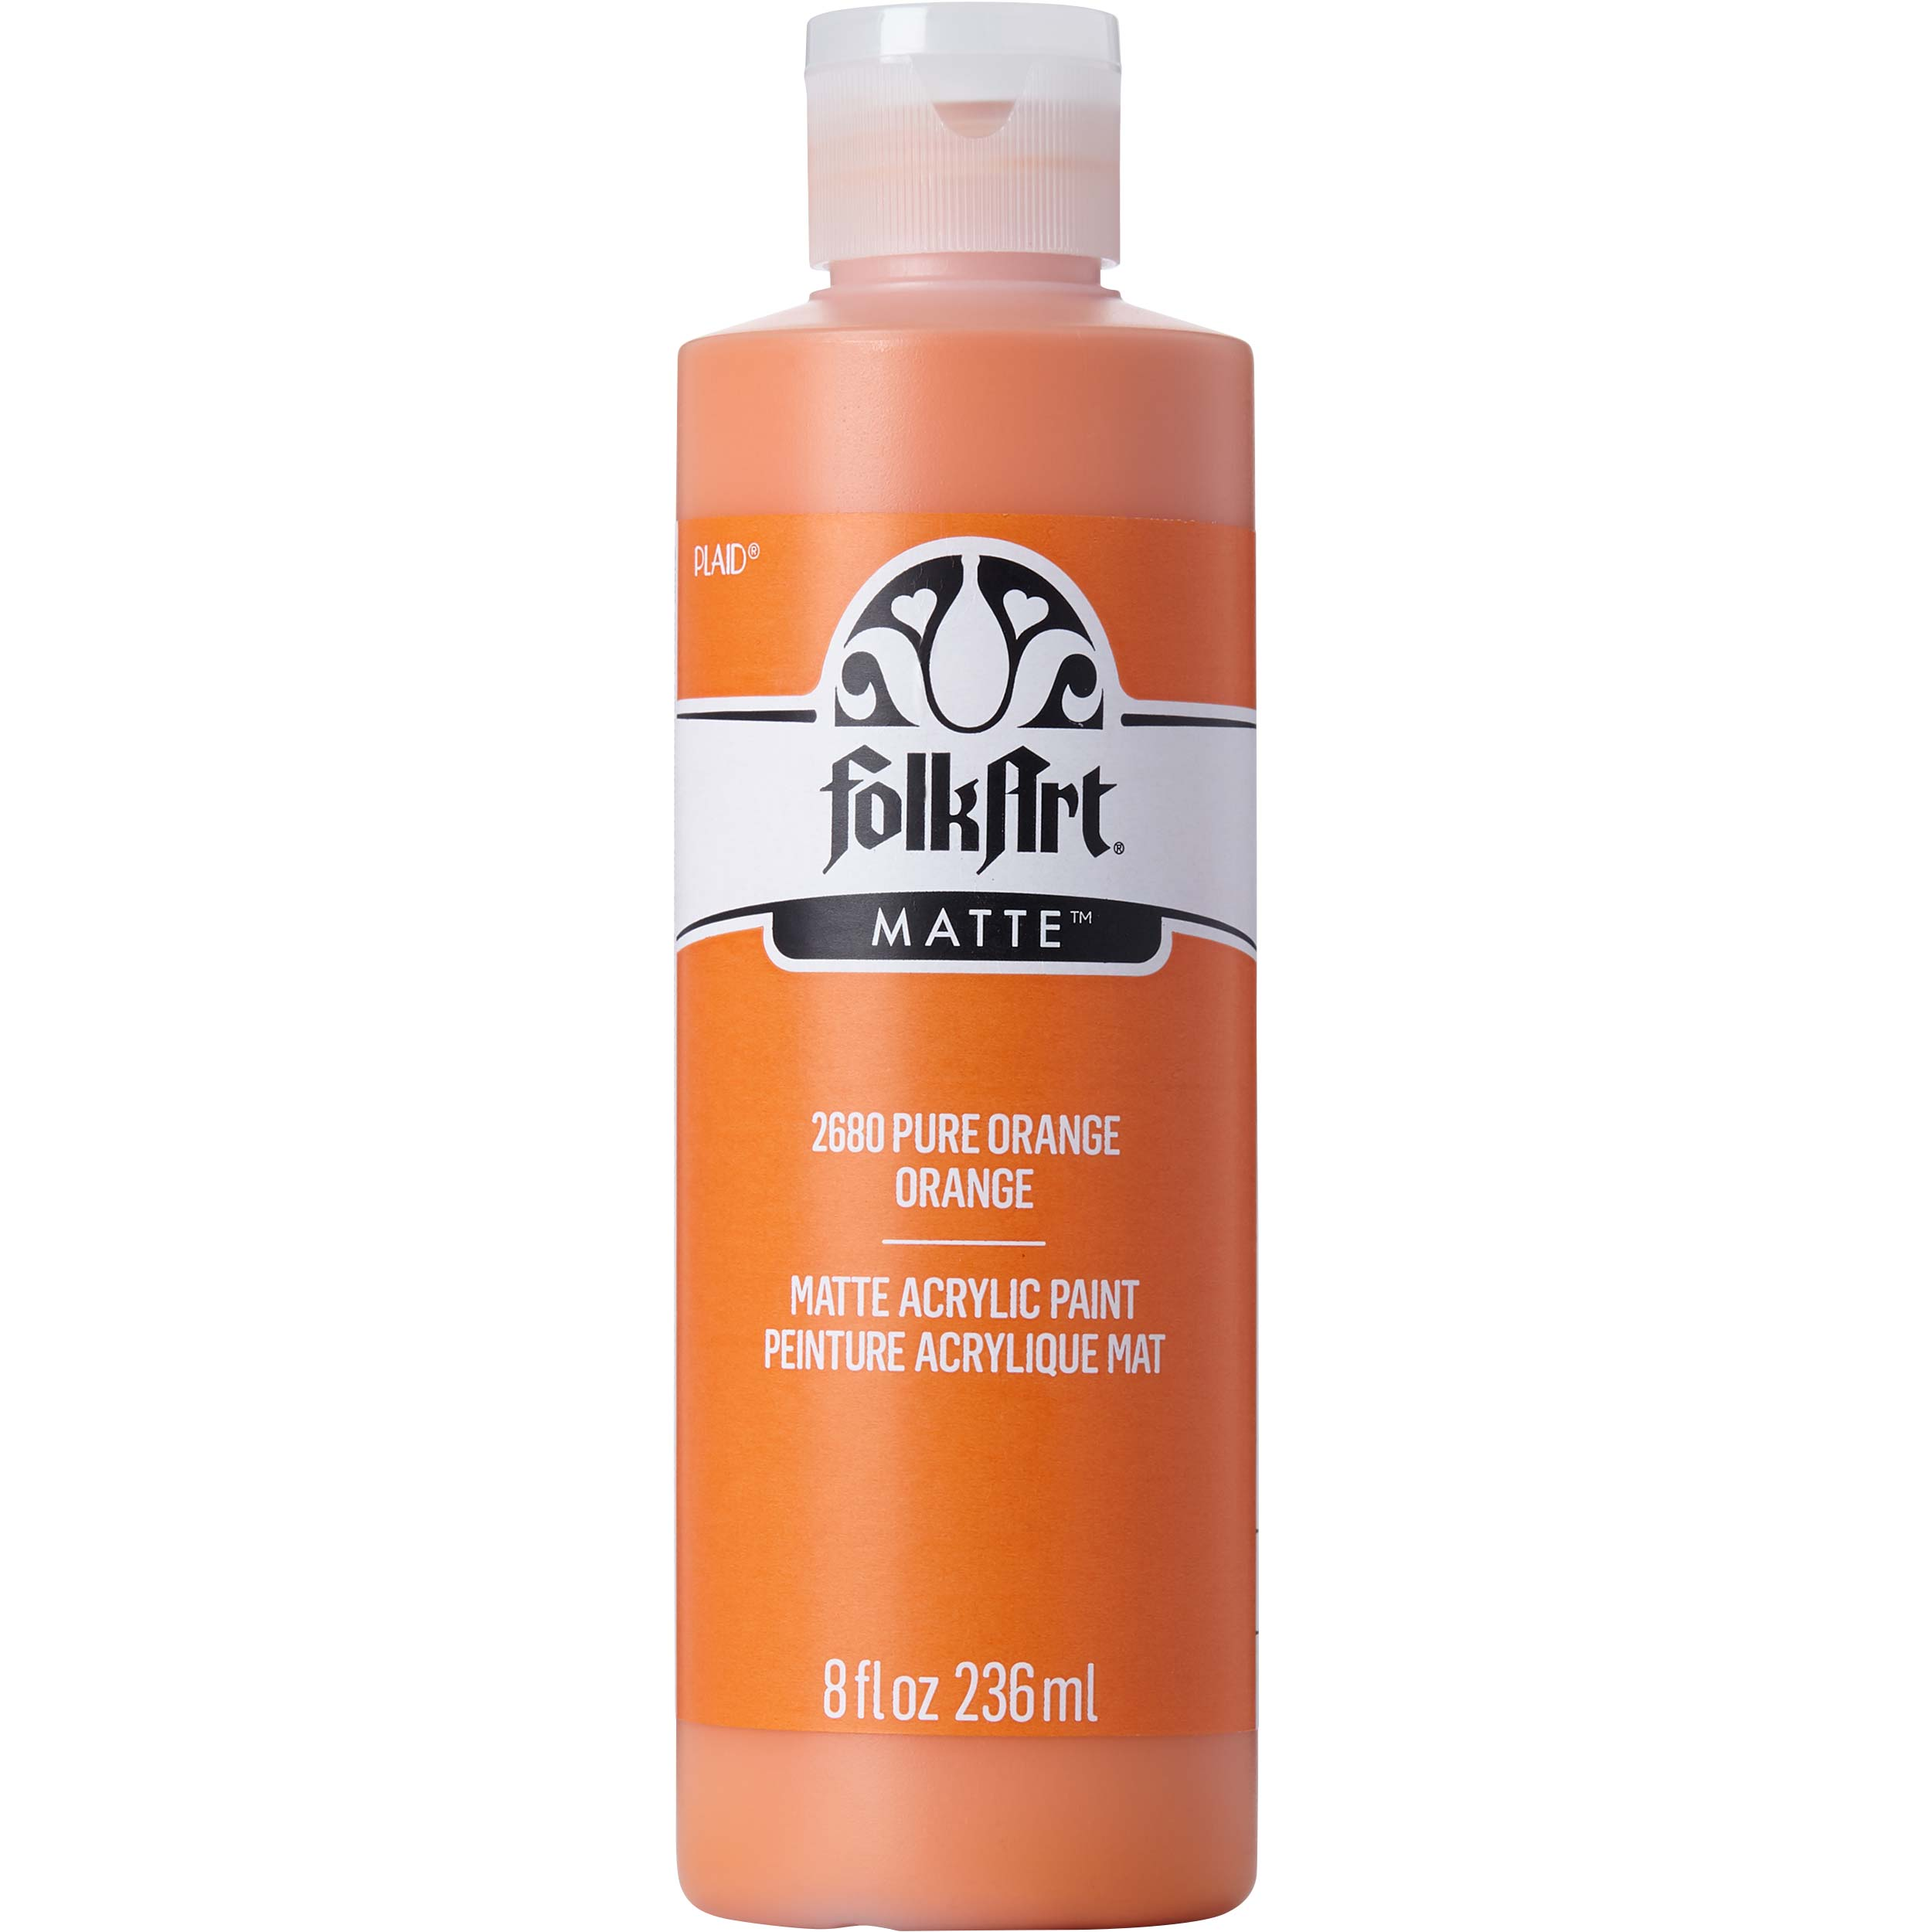 FolkArt ® Acrylic Colors - Pure Orange, 8 oz. - 2680